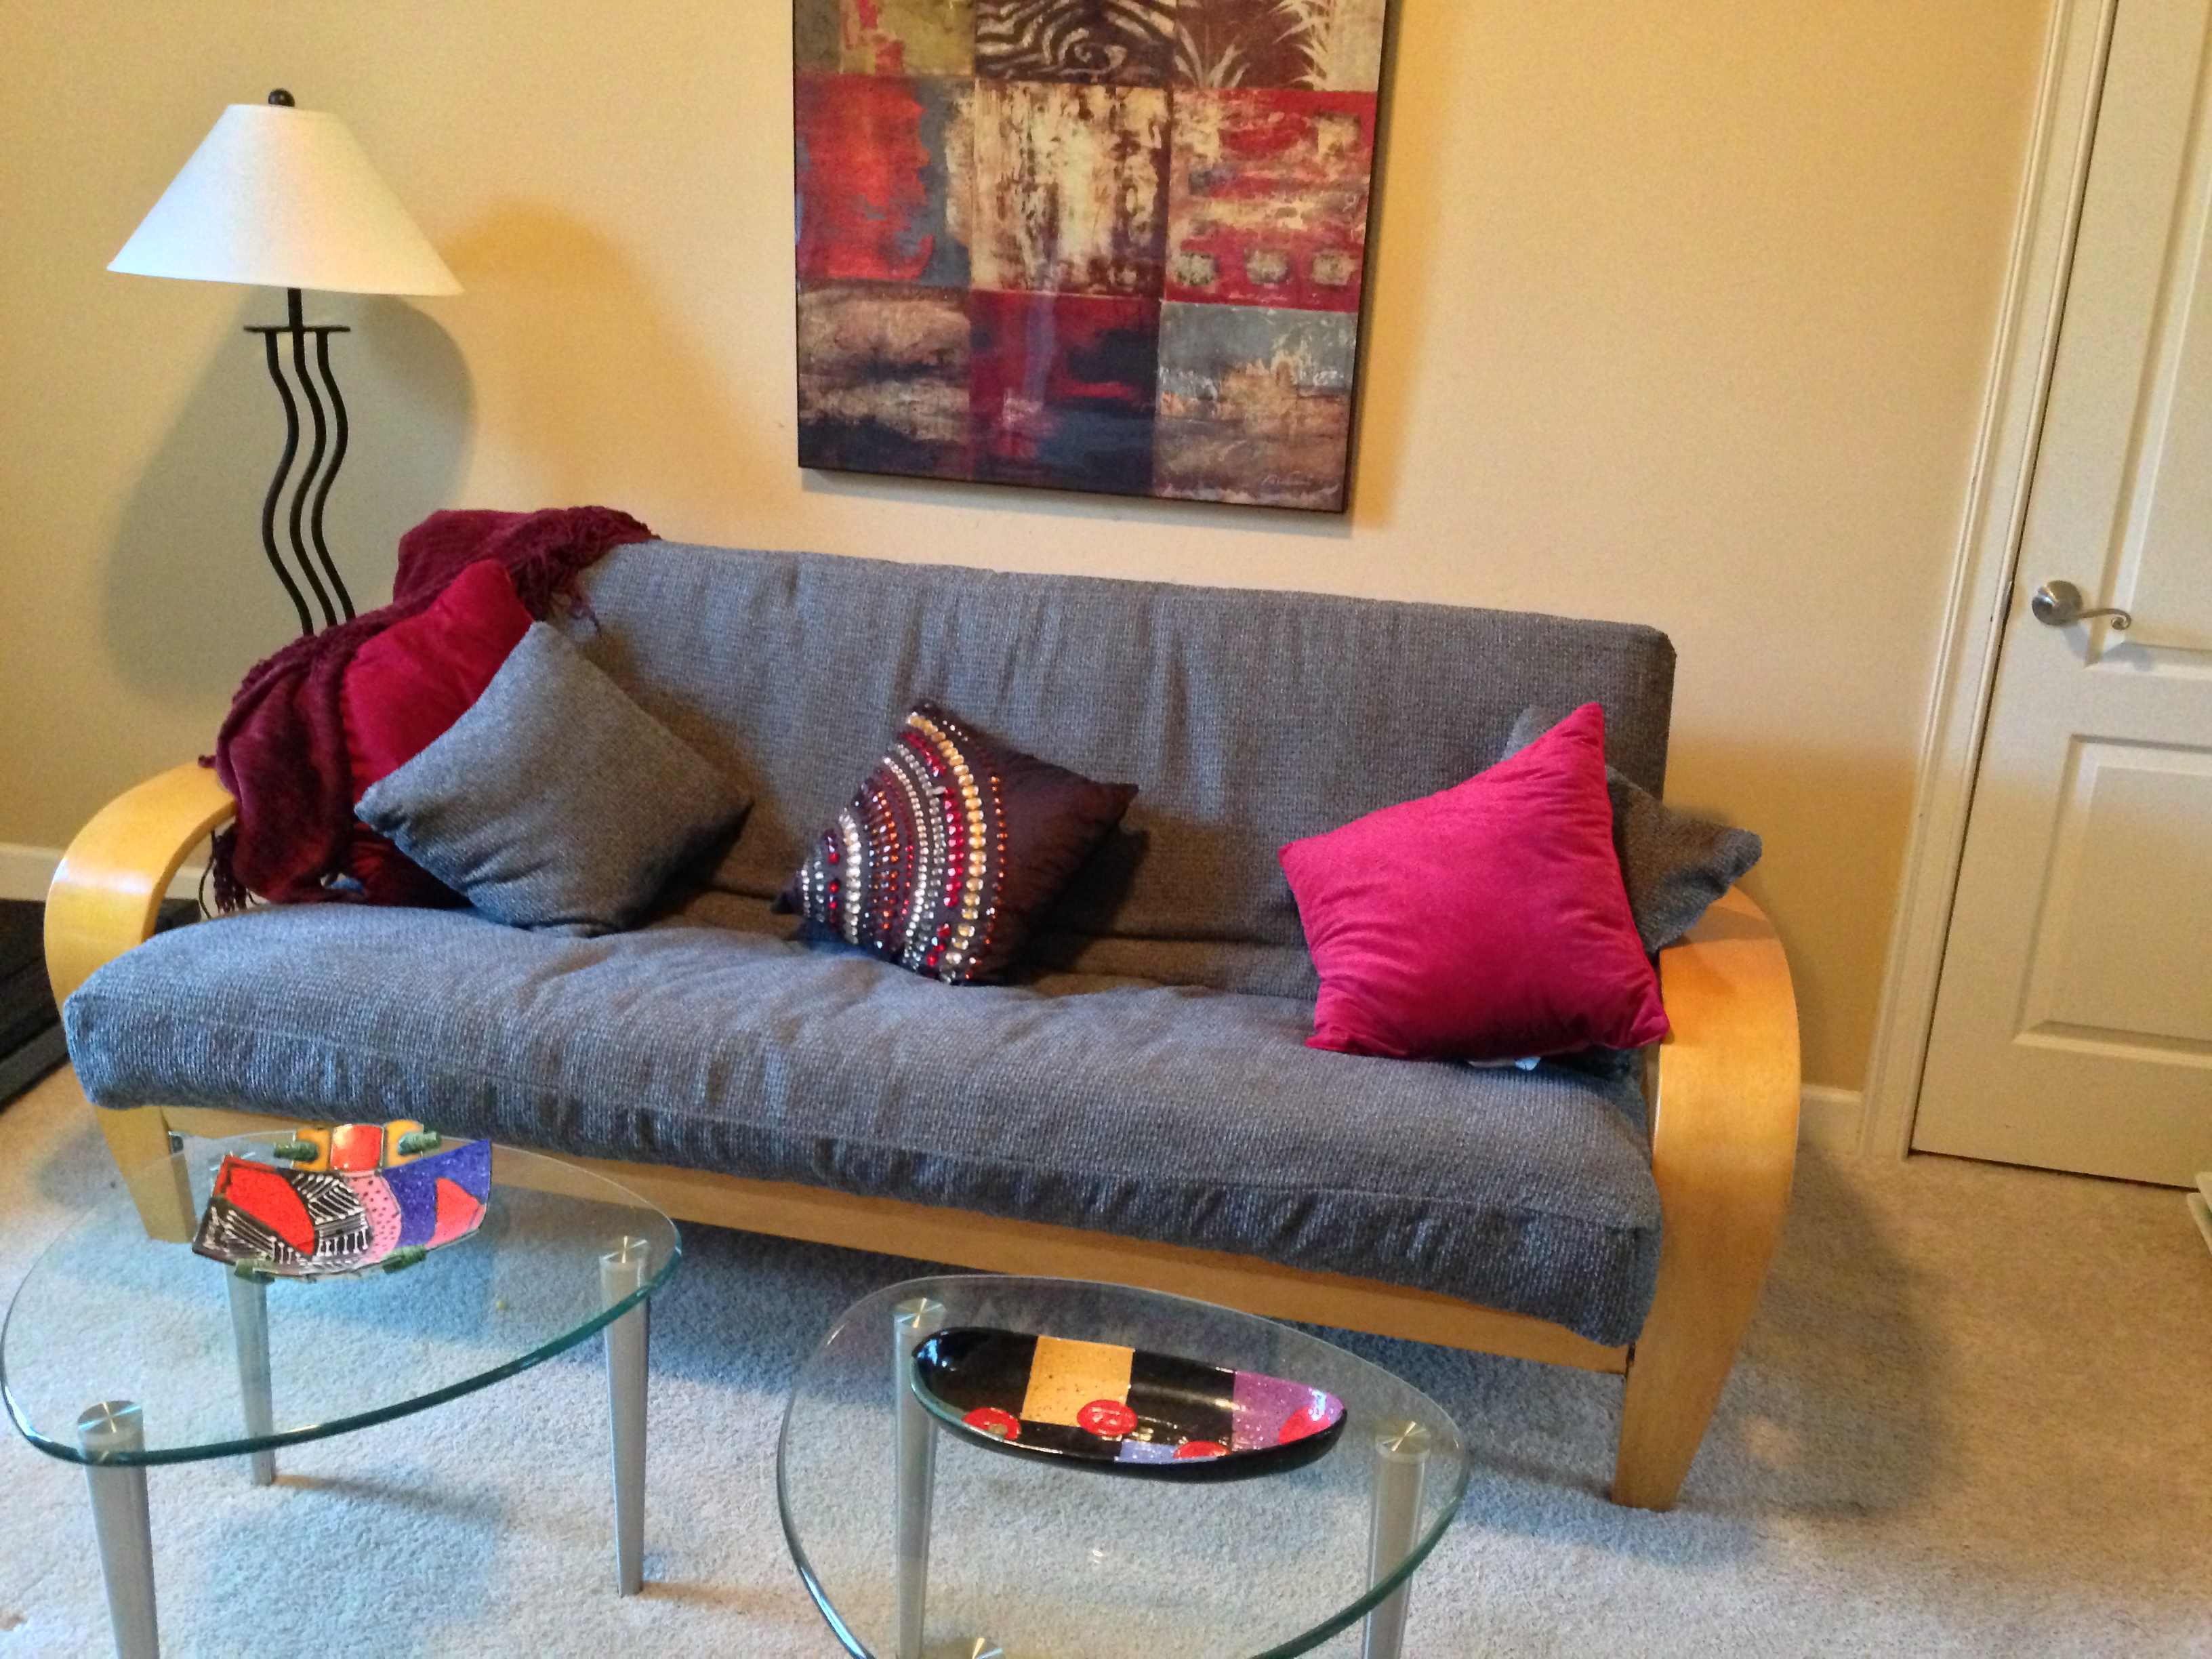 Futon Lady\'s Blog | decorating ideas using a futon